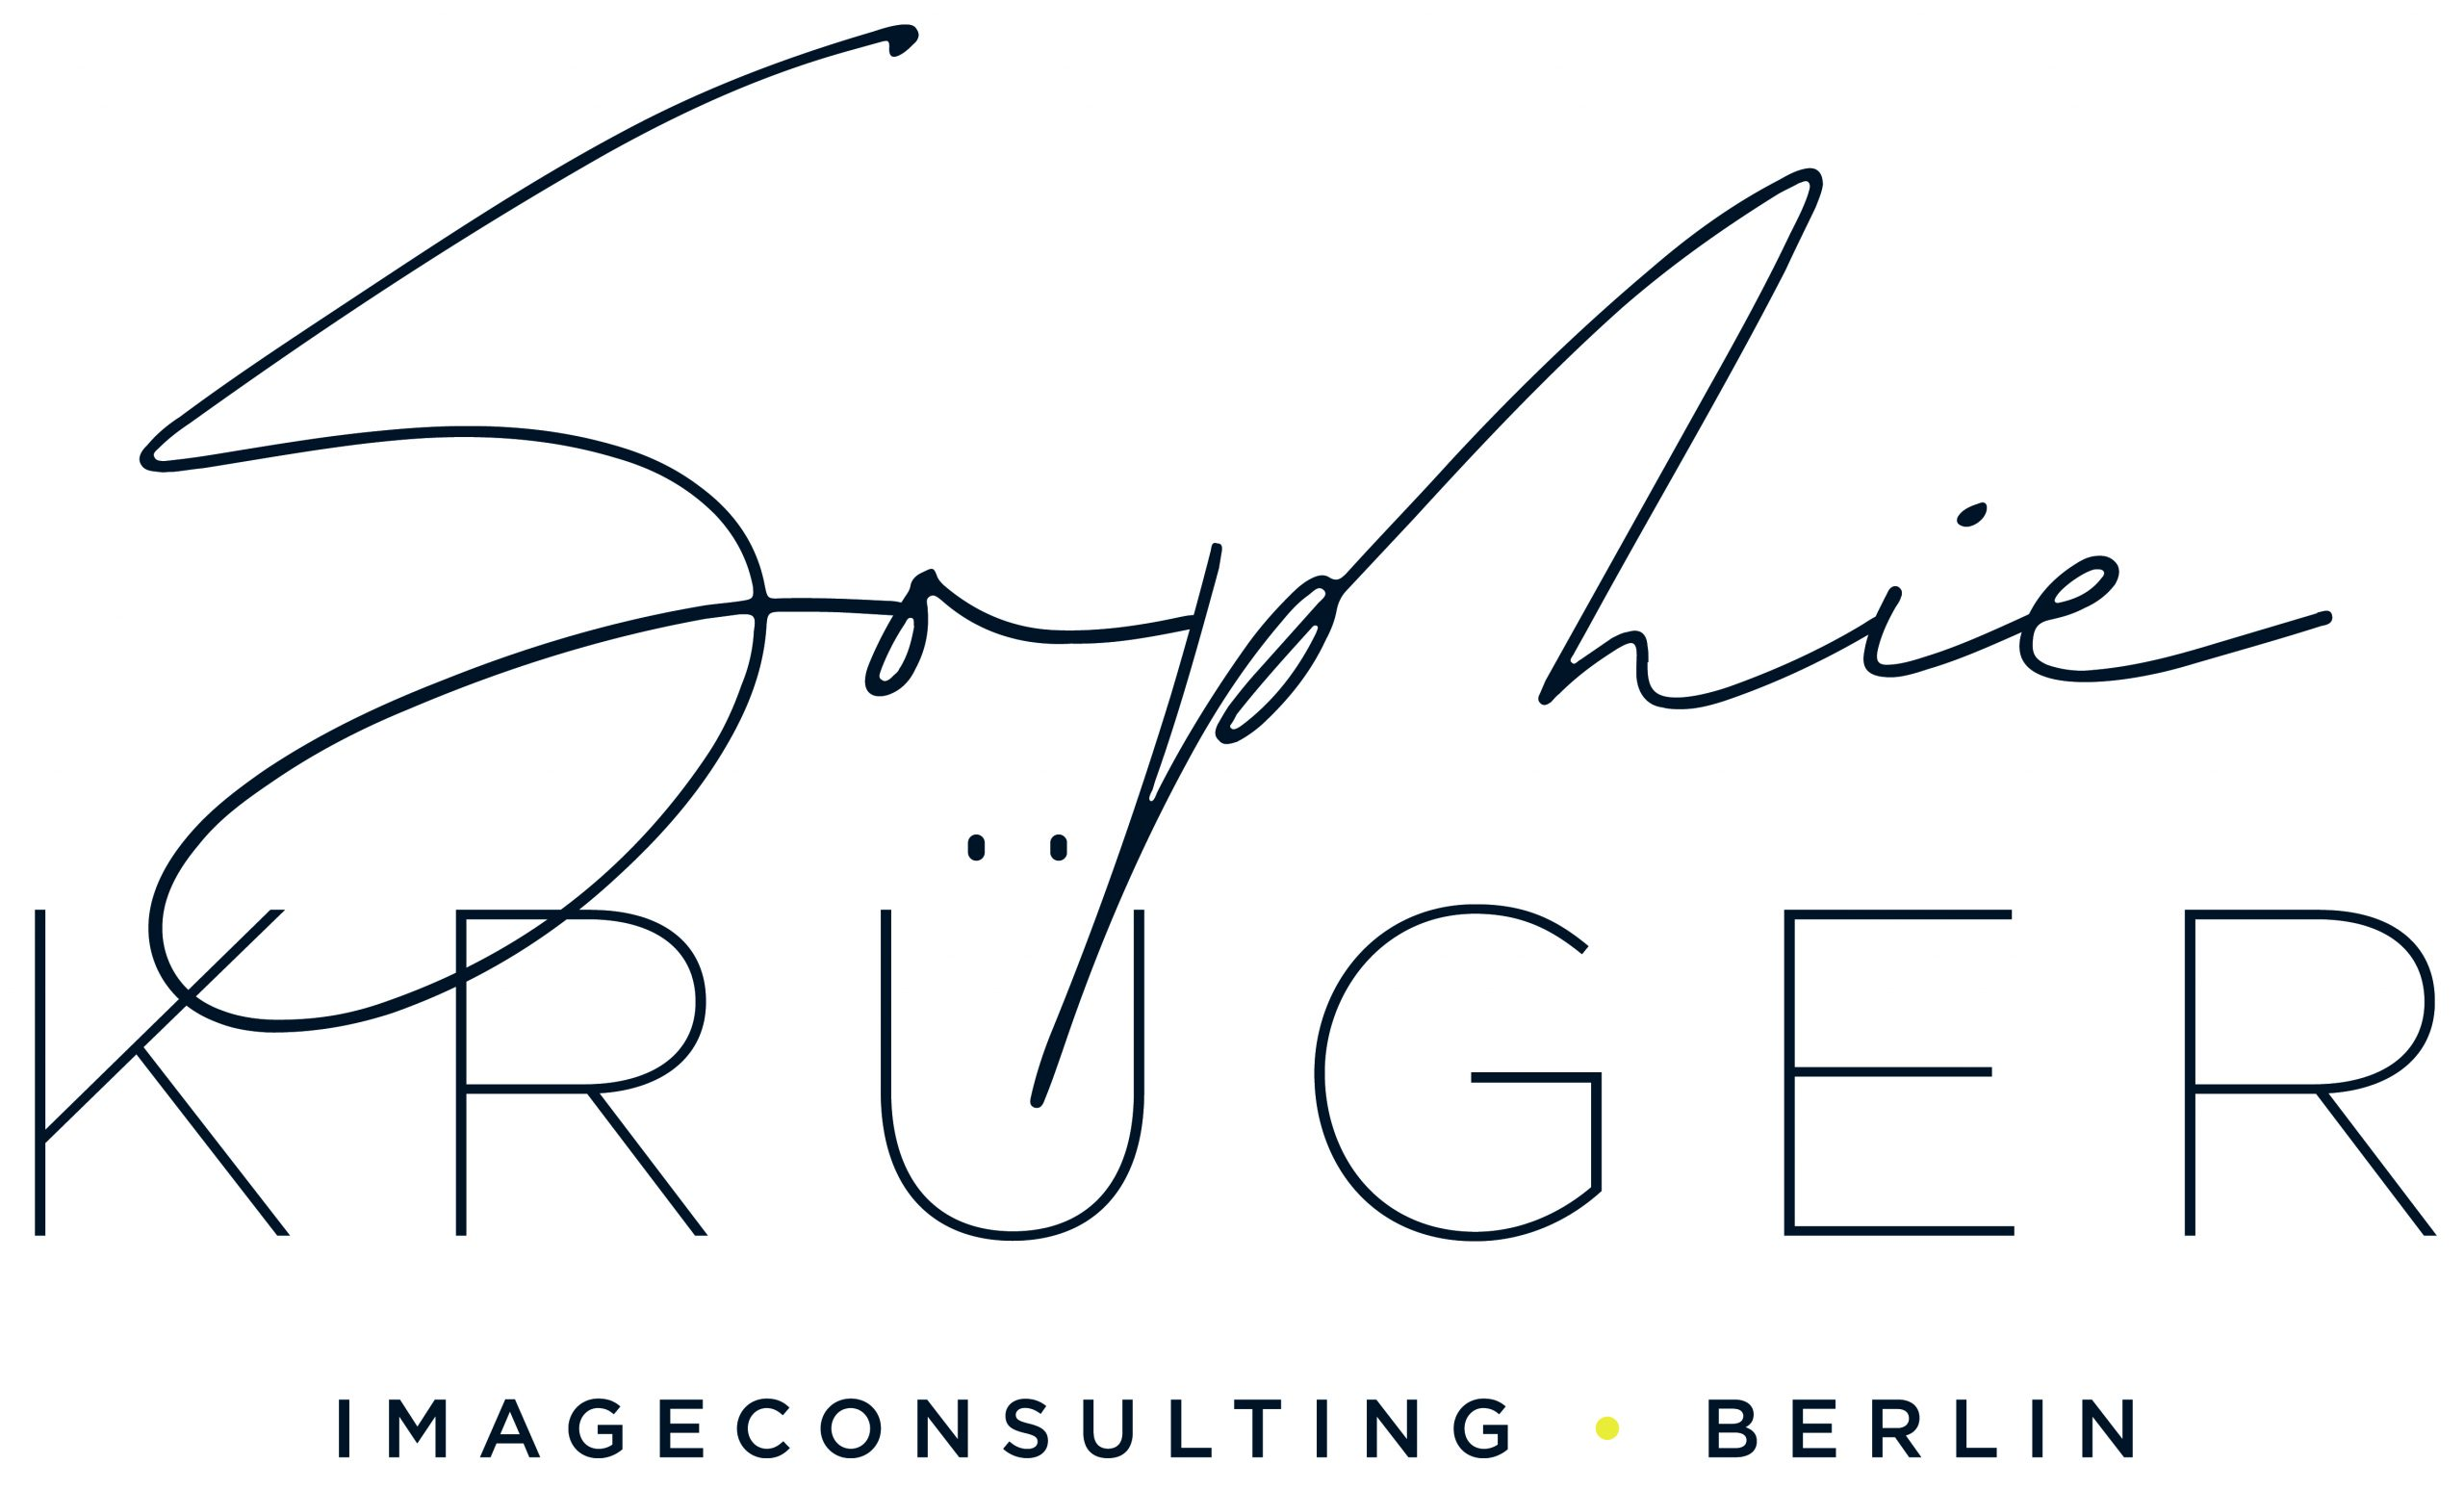 Imageconsulting Berlin